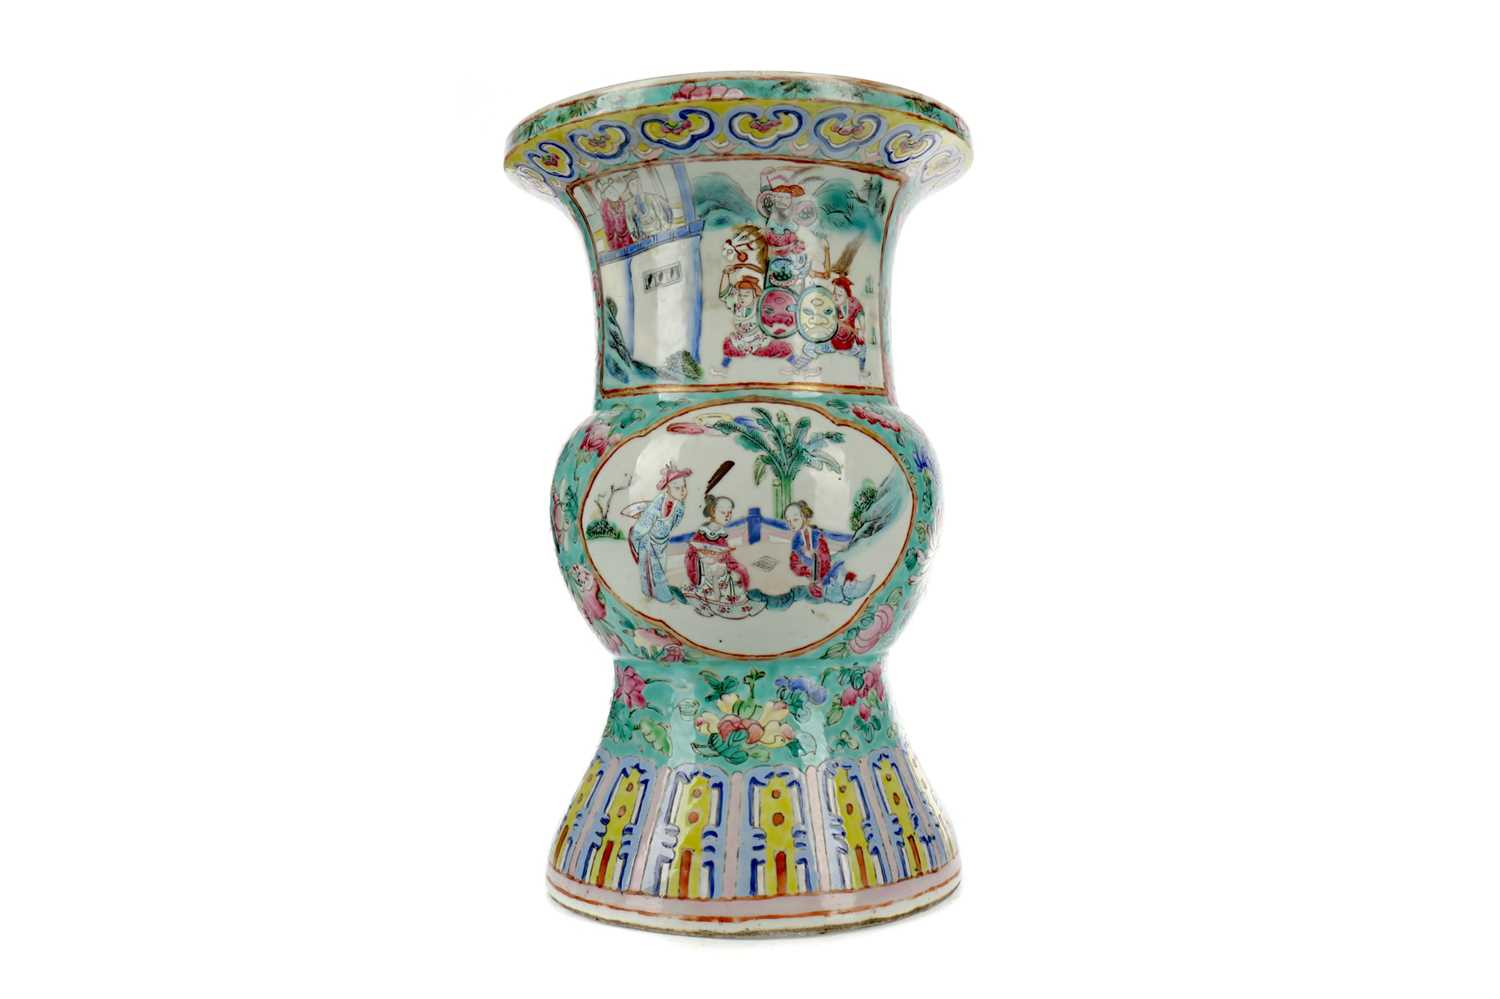 Lot 685 - A 19TH CENTURY CHINESE FAMILLE ROSE HU SHAPED VASE